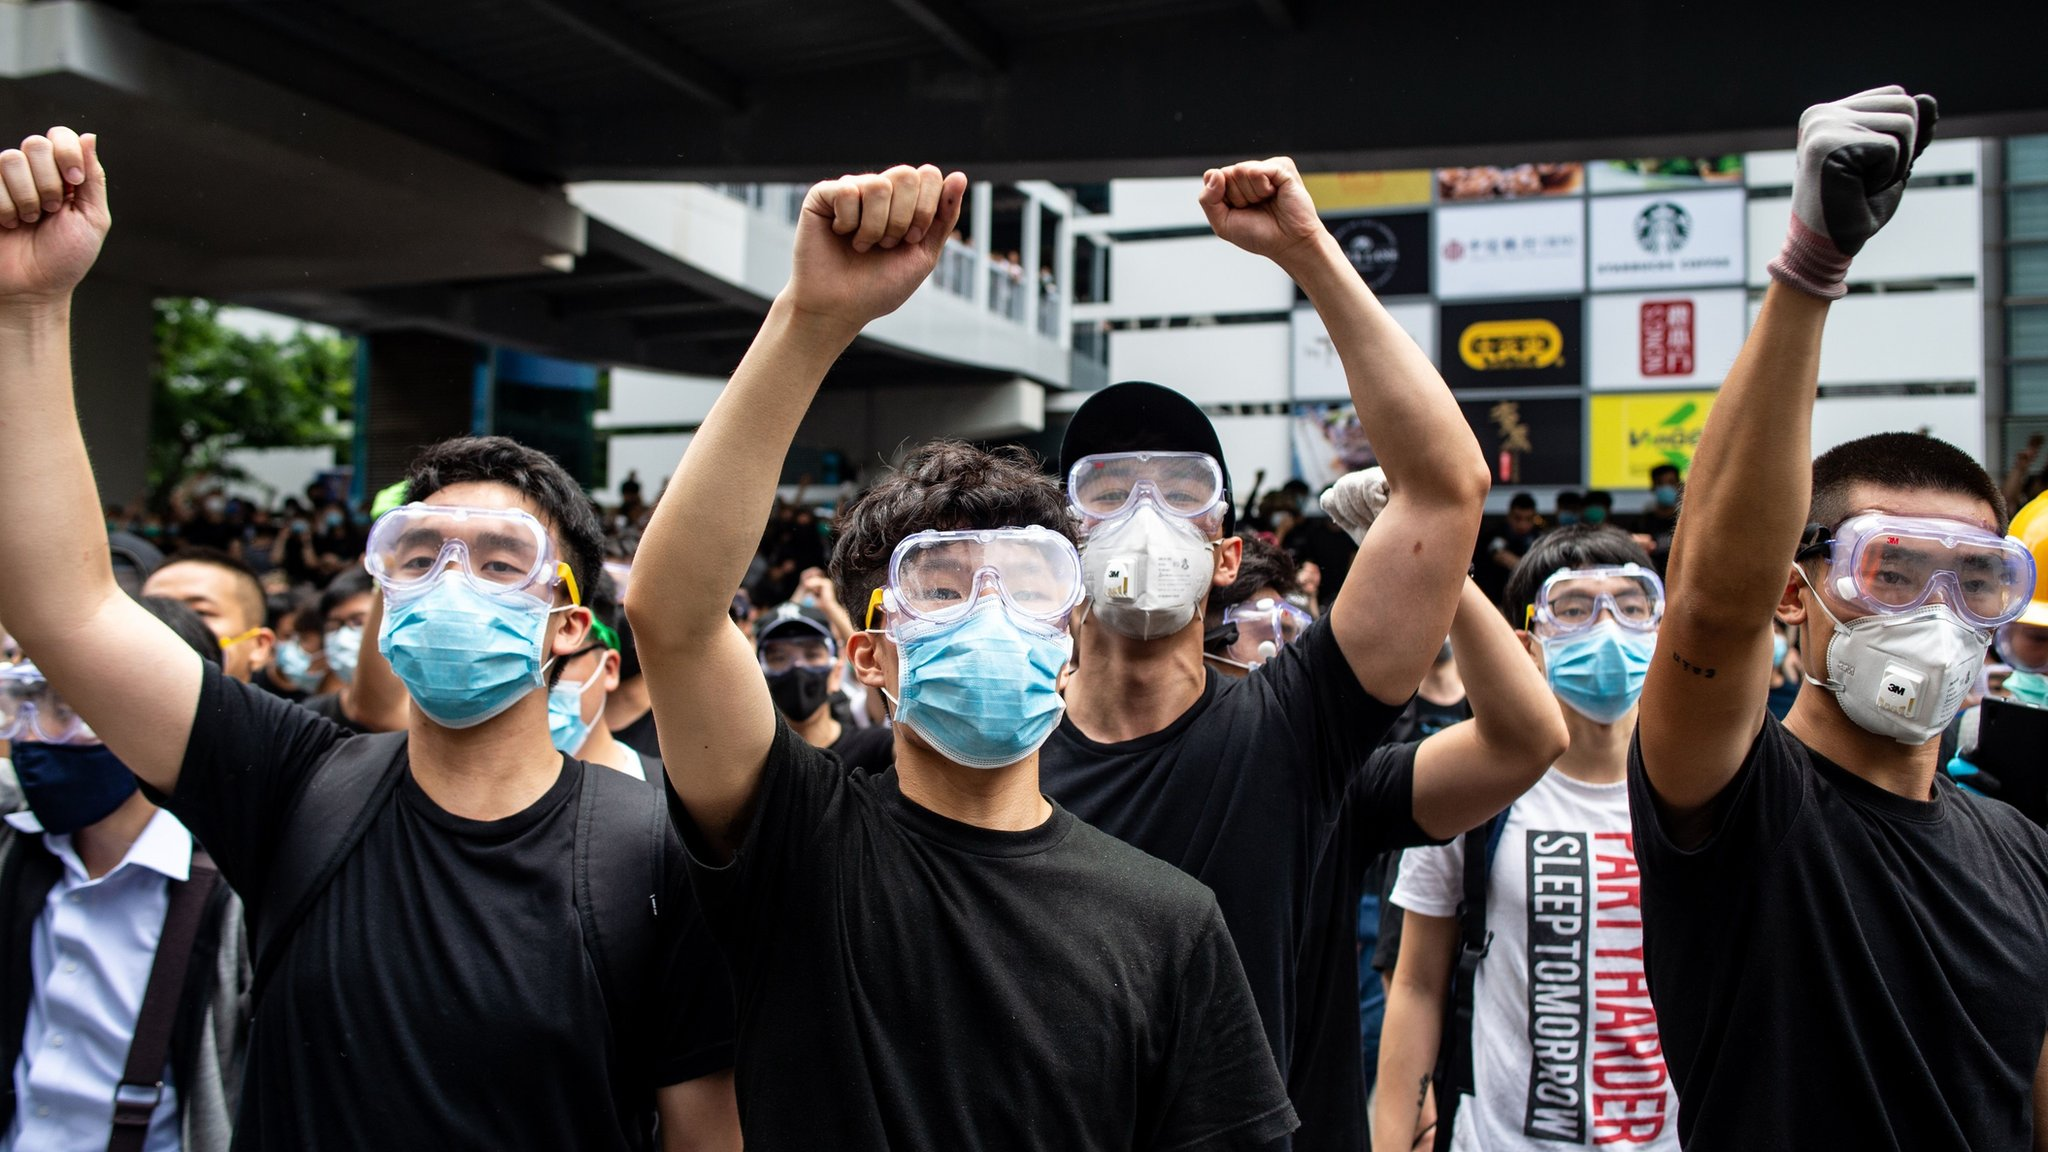 Hong Kong extradition: How radical youth forced the government's hand